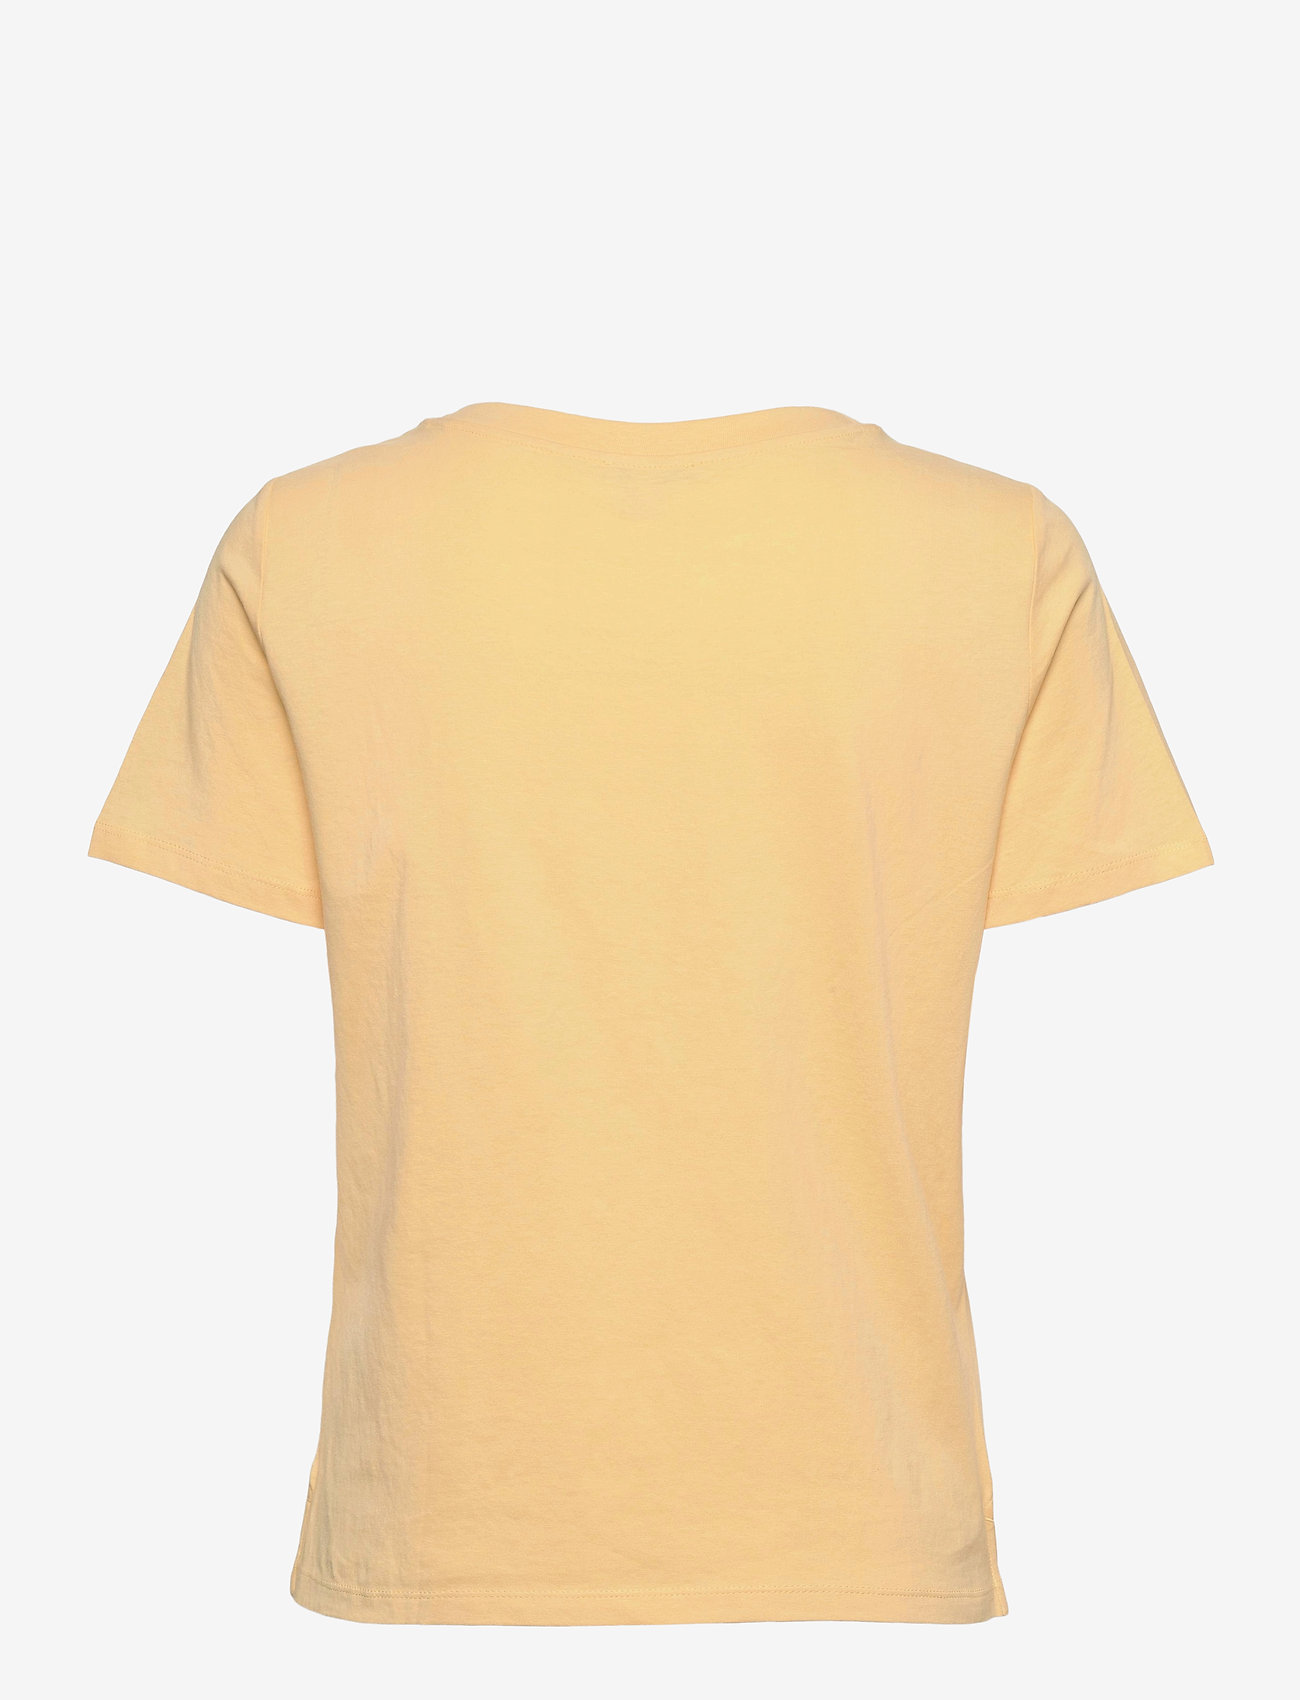 Esprit Casual - T-Shirts - t-shirts - sunflower yellow - 1